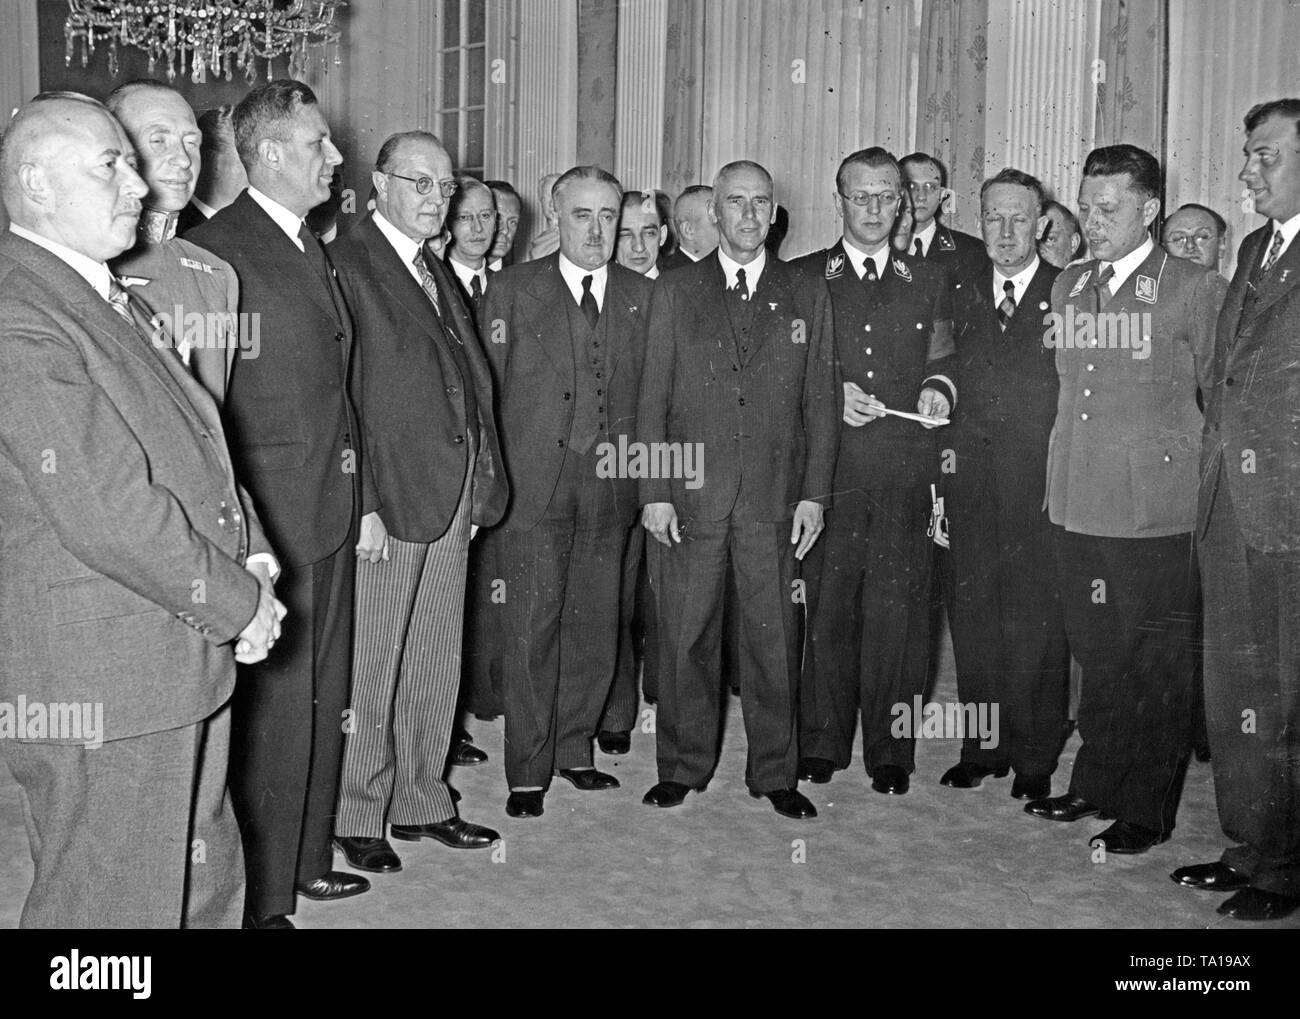 Reich Minister of the Interior Wilhelm Frick receives the Austrian Government in Berlin. From left to right: State Secretary Hans Pfundtner, State Secretary Maximilian de Angelis, Ministers Hans Fischboeck, Hugo Jury, Edmund Glaise-Horstenau, Reich Minister of the Interior Wilhelm Frick, Reich Governor Arthur Seyss-Inquart and State Secretary Friedrich Wimmer. Stock Photo